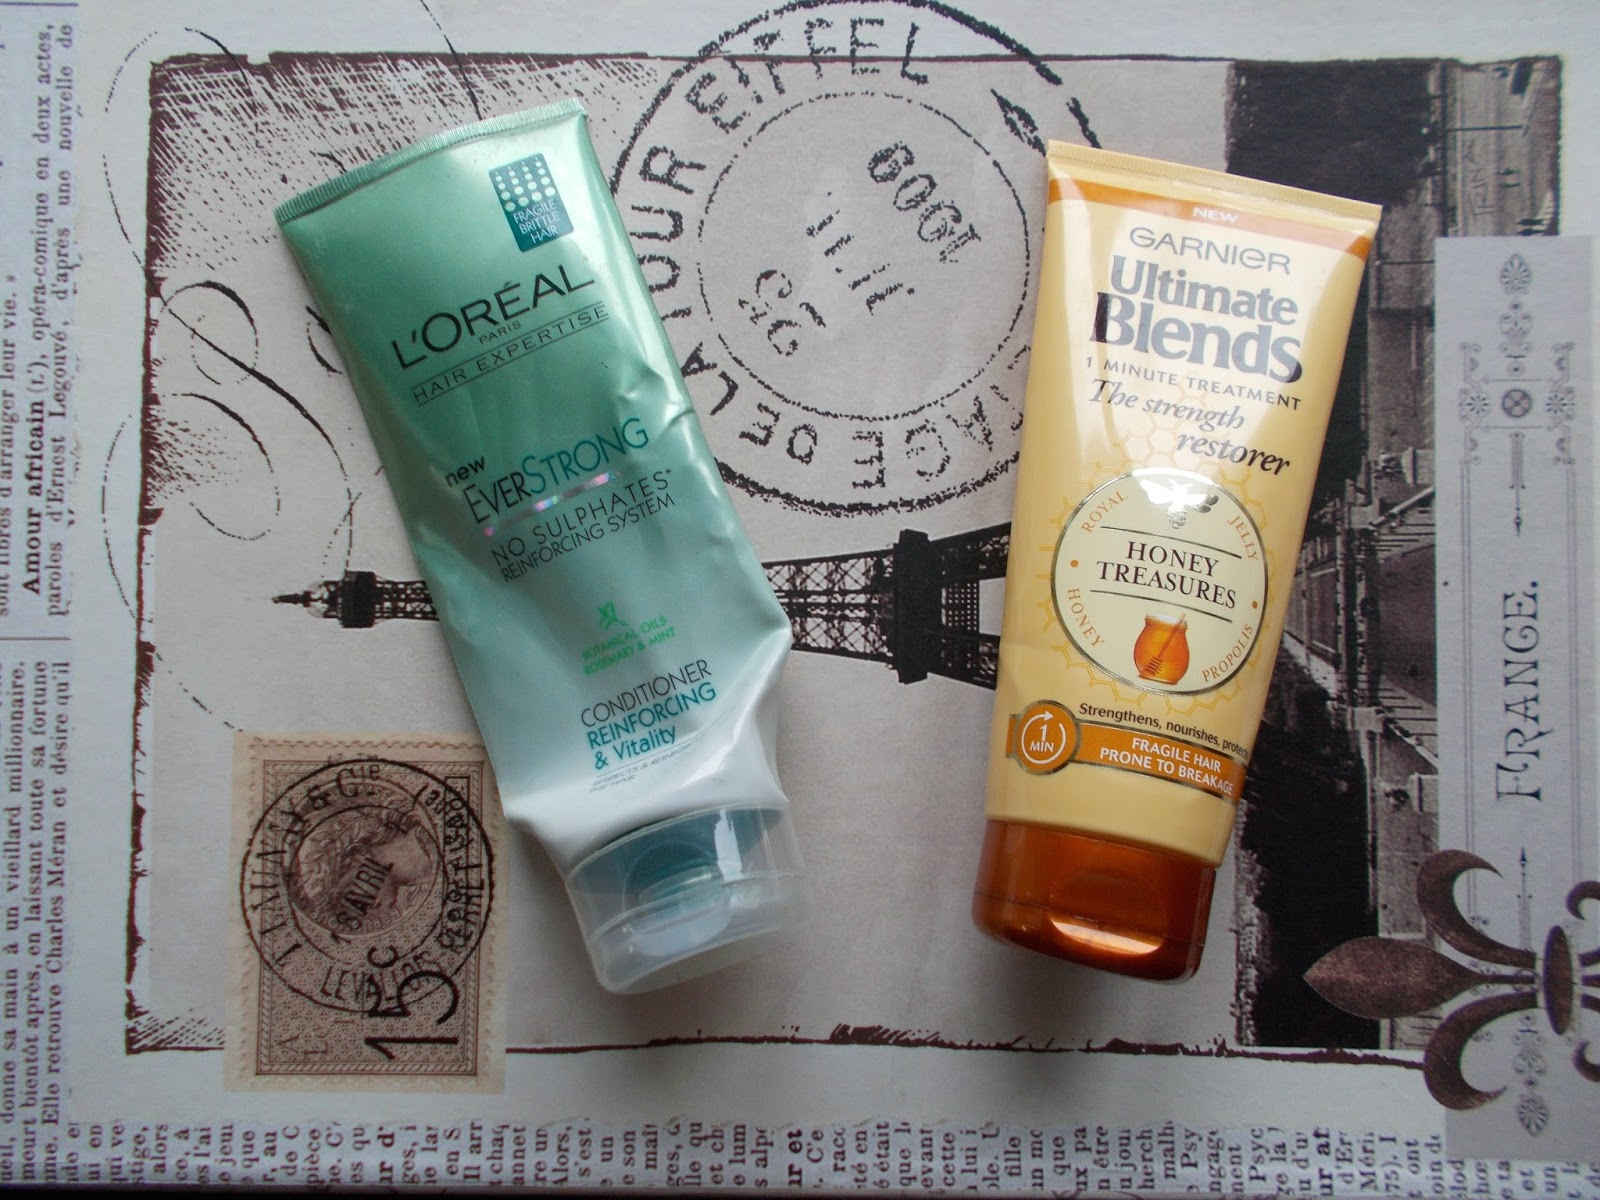 haircare empties reviews loreal garnier ultimate blends